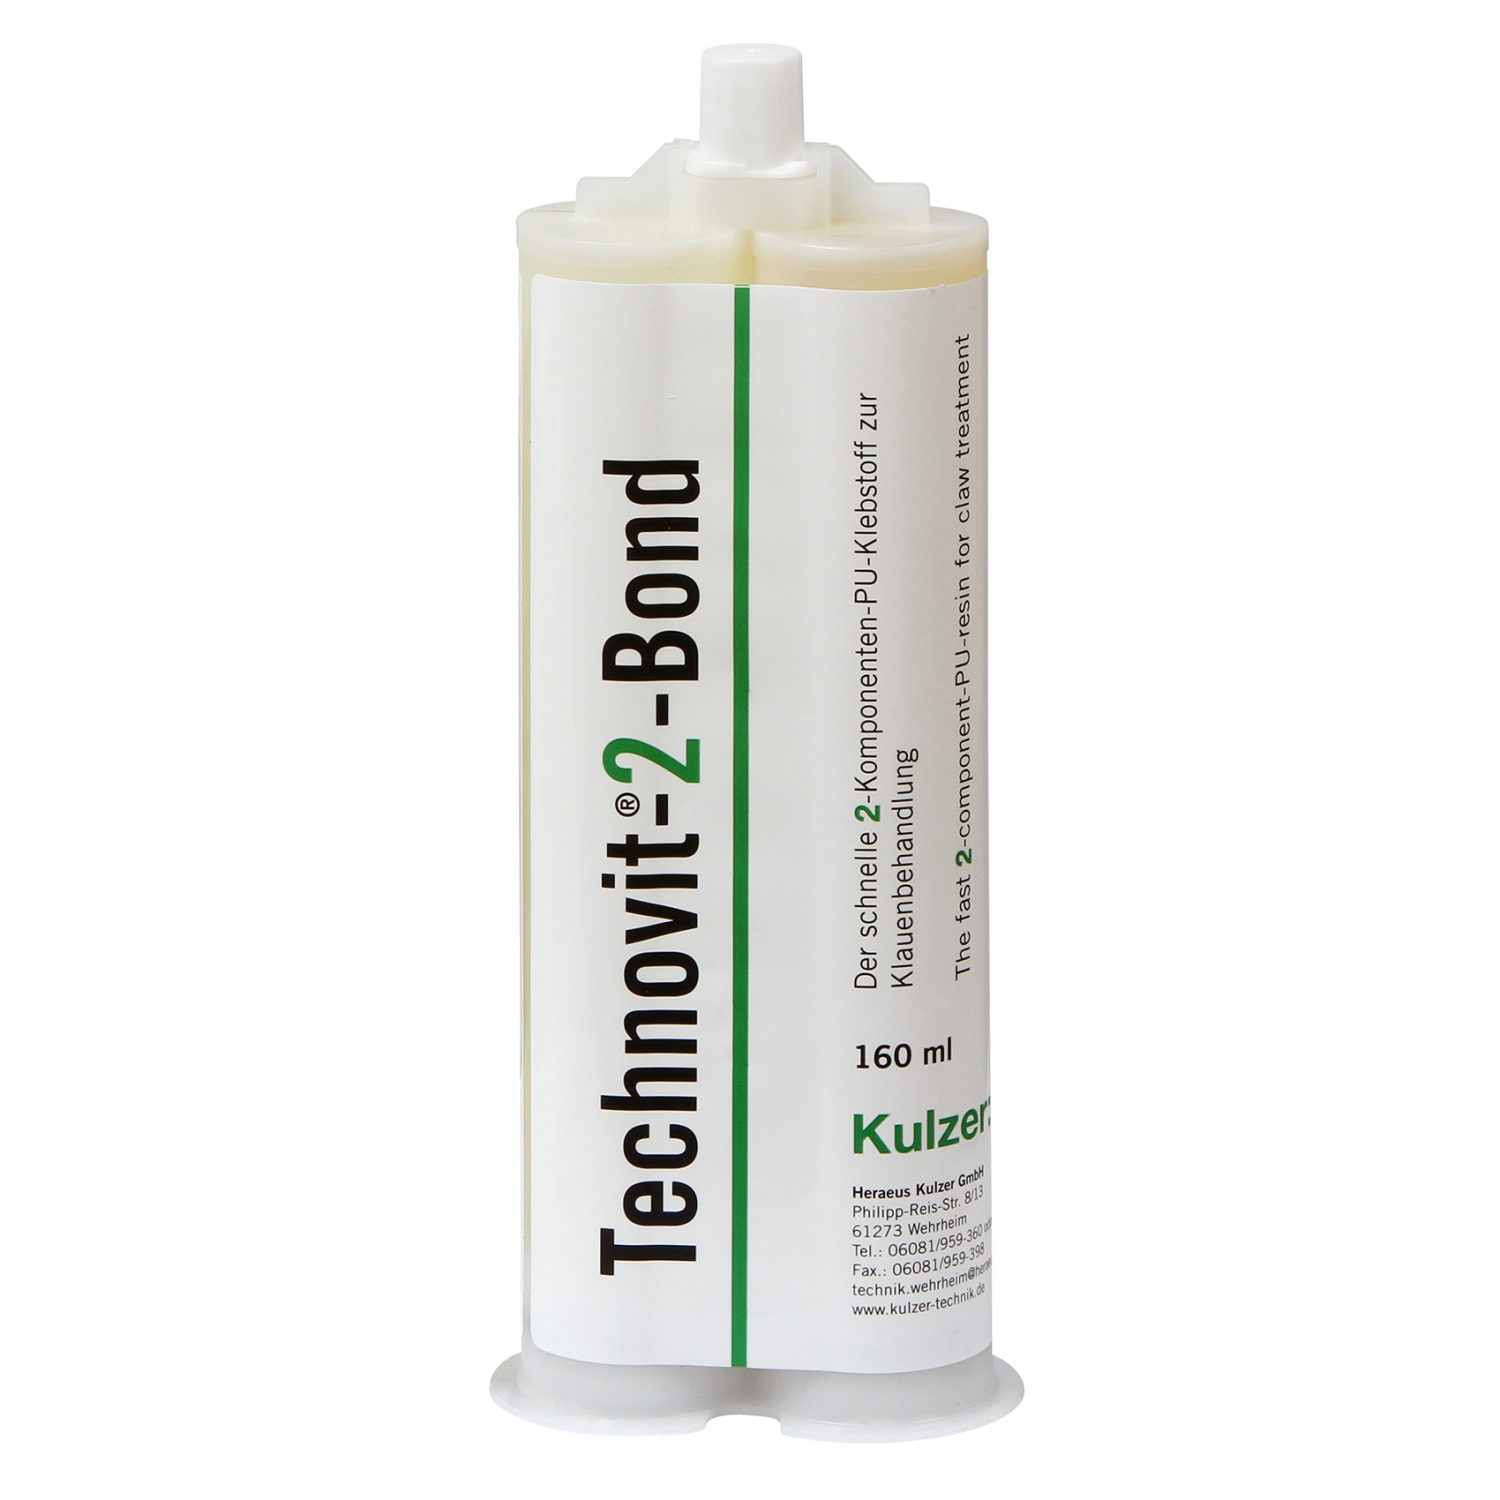 Technovit 2-komp.lim, 160 ml